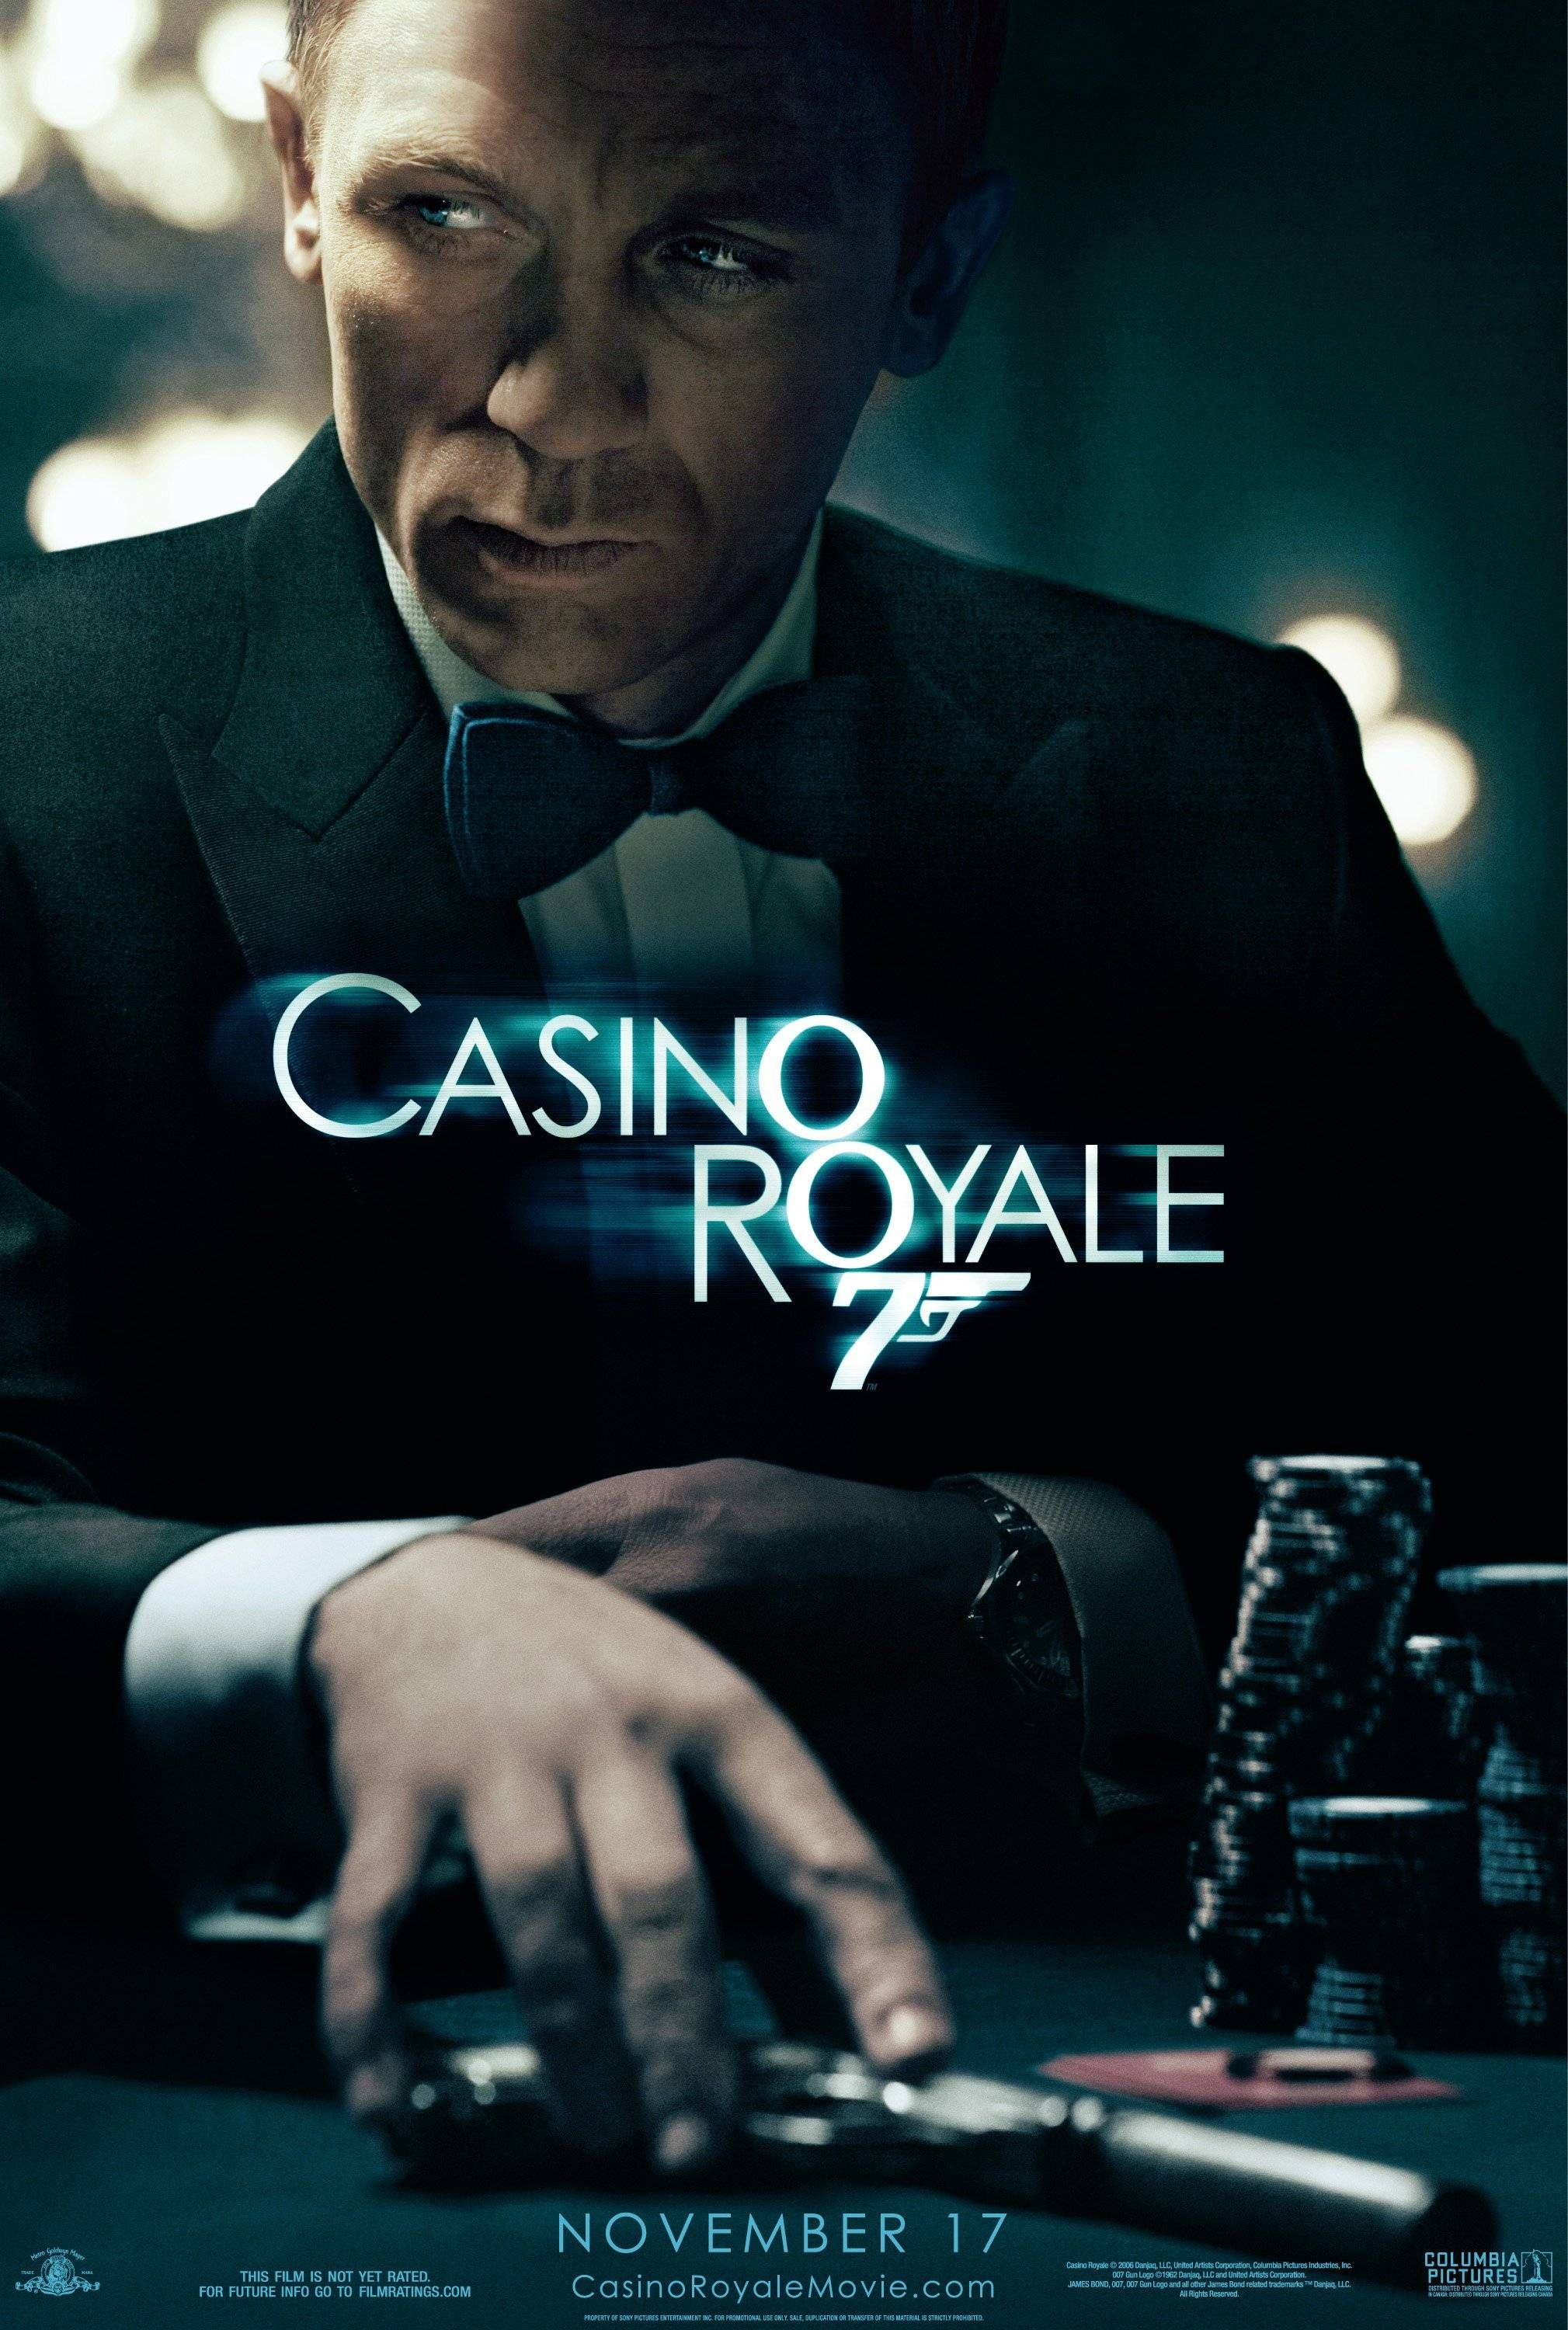 Daniel Craig Beat Superman Perseus To Win Casino Royale Bond